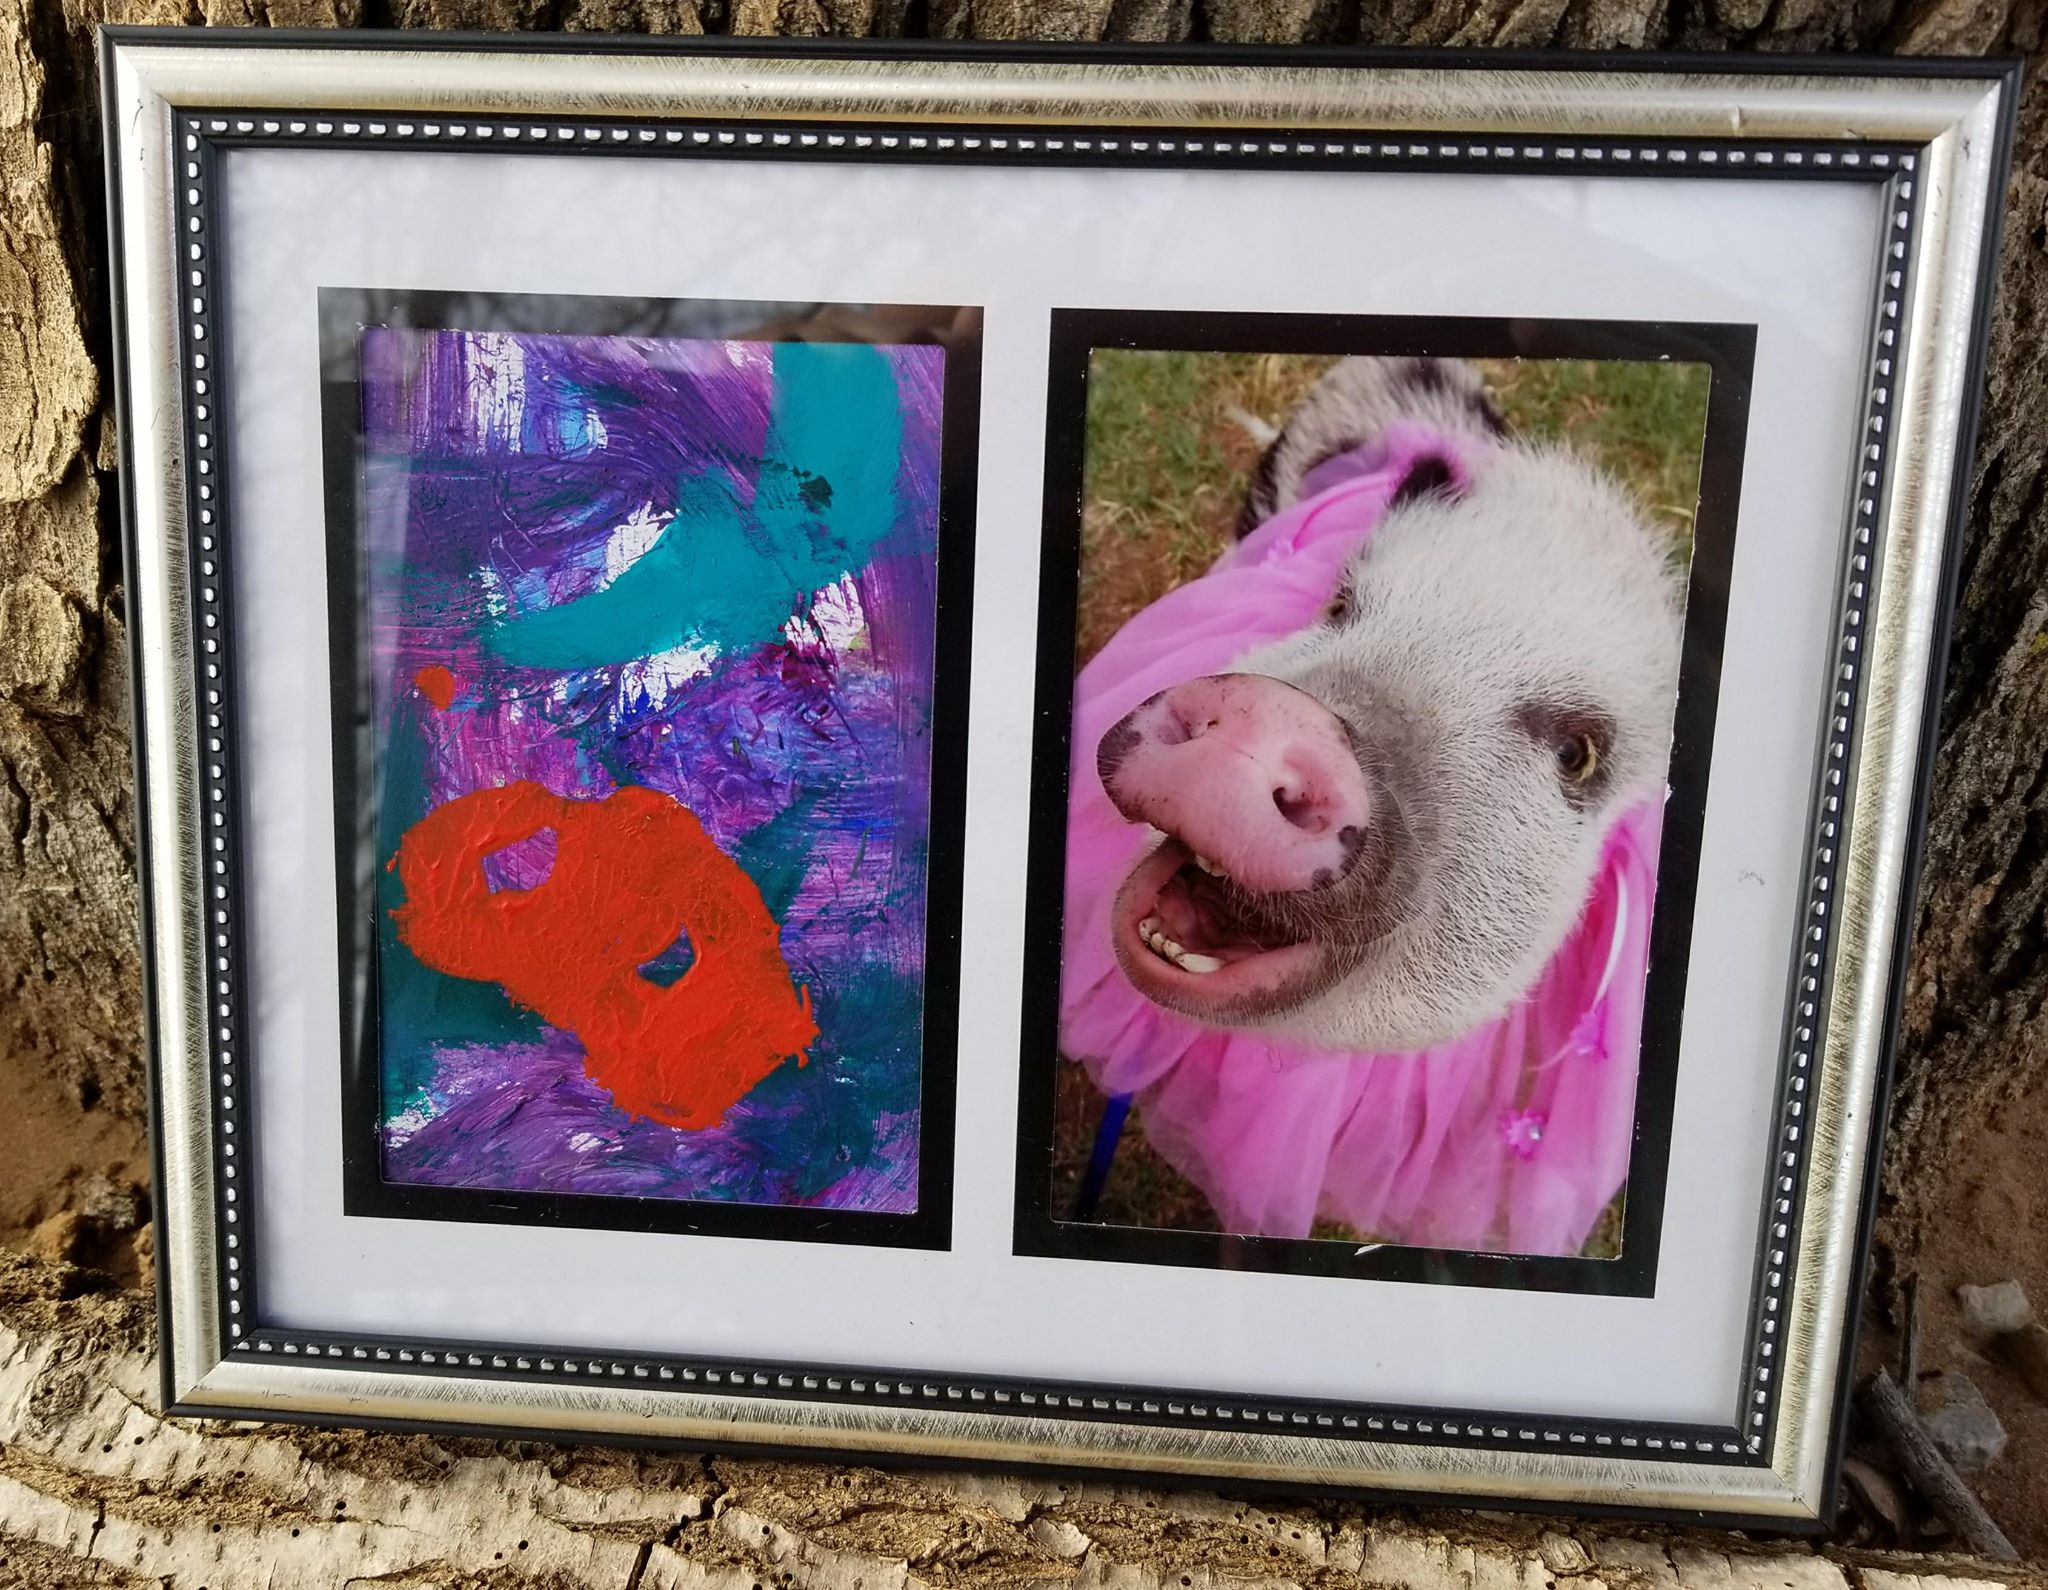 snout art mini pigs painting with their snouts